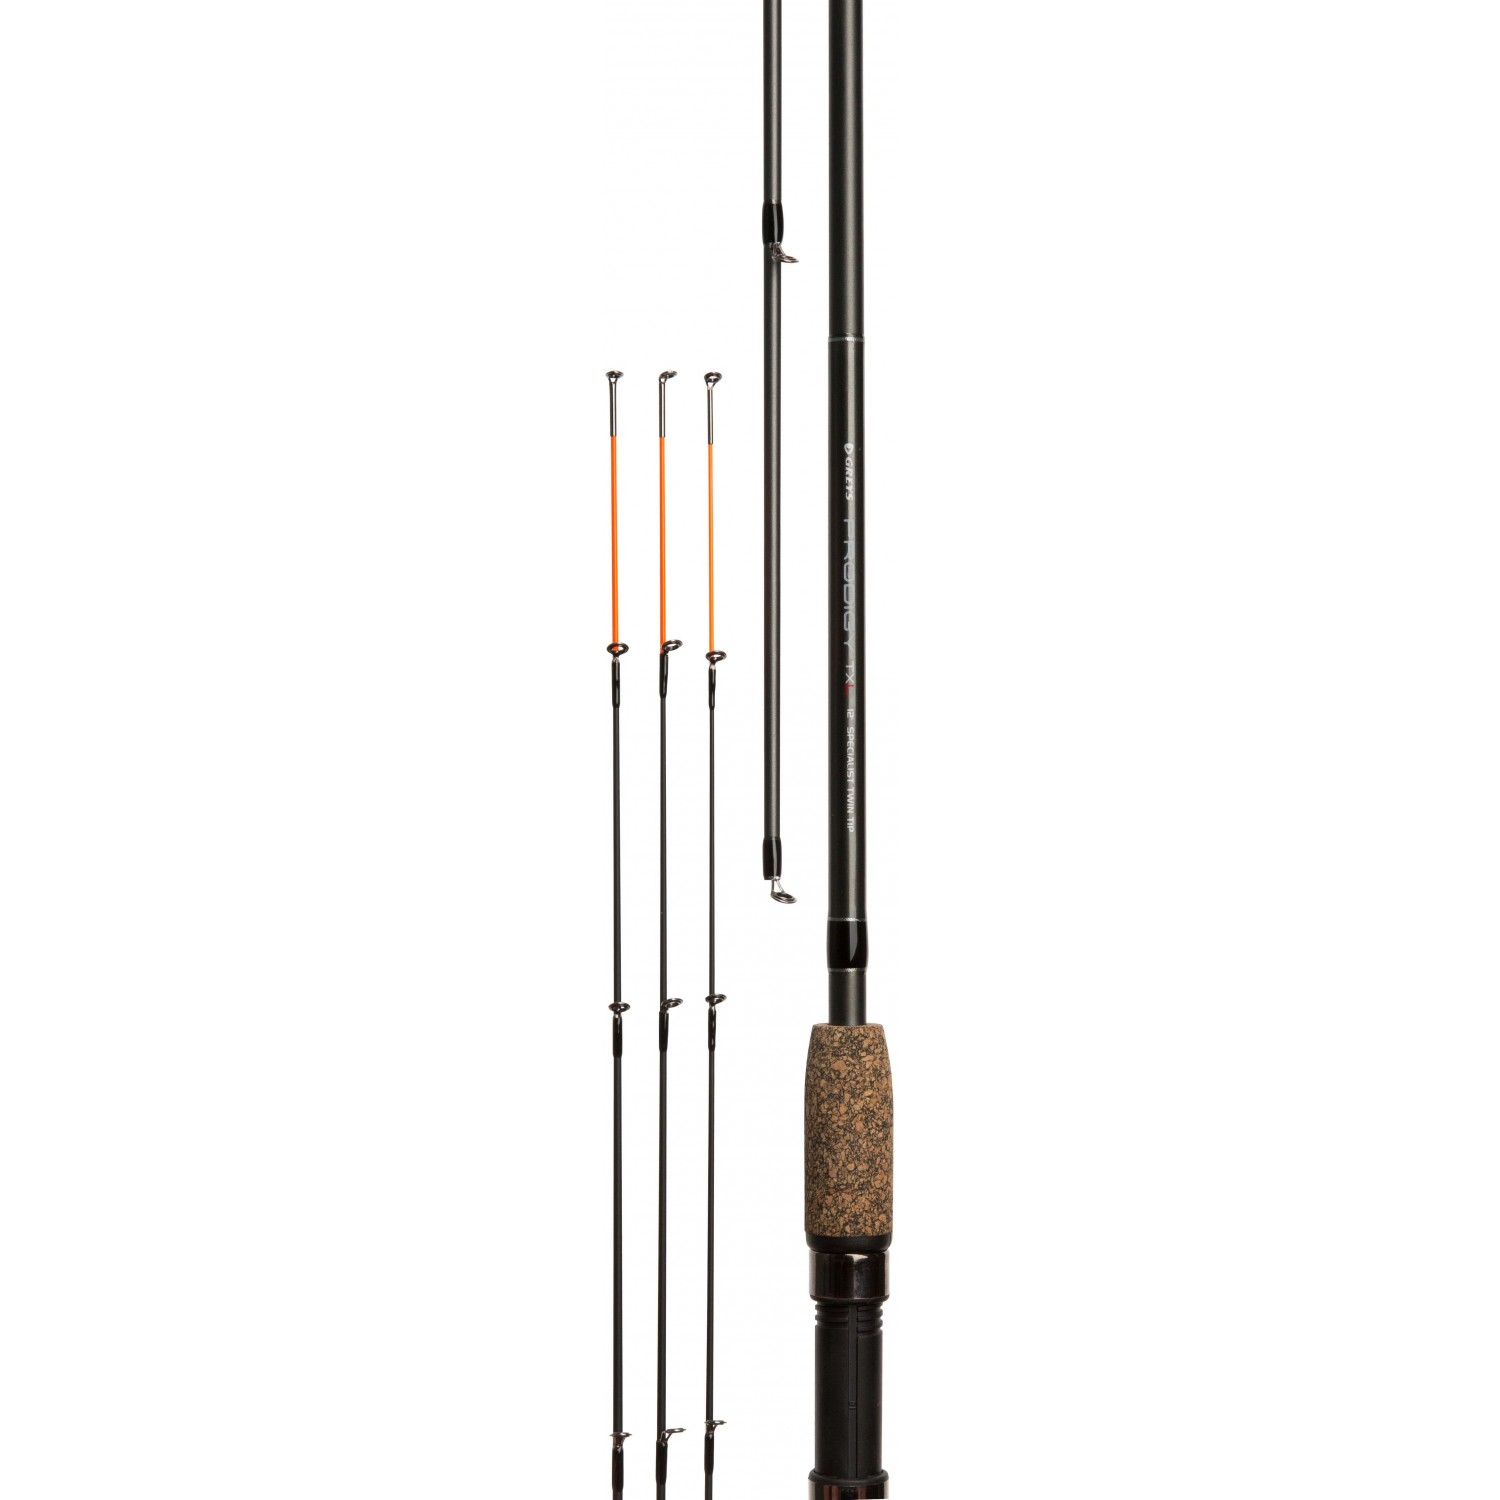 Greys Prodigy Txl Twin Tip, 3.66m, up to 70g